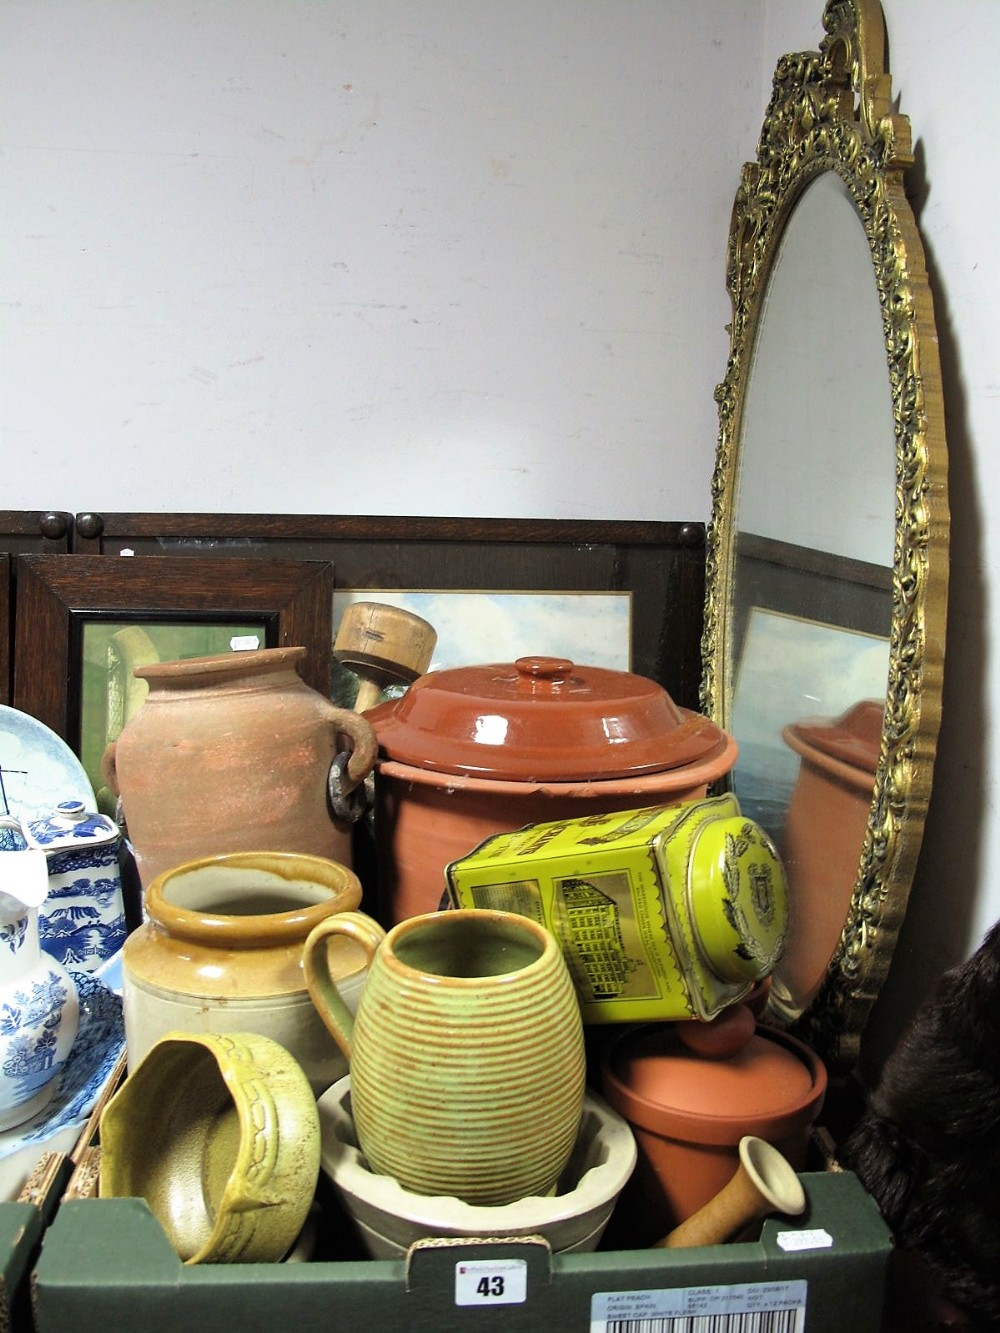 Lot 43 - Terracotta Kitchen Storage Jars, amphora type vessel, jelly mould, butter pats, together with